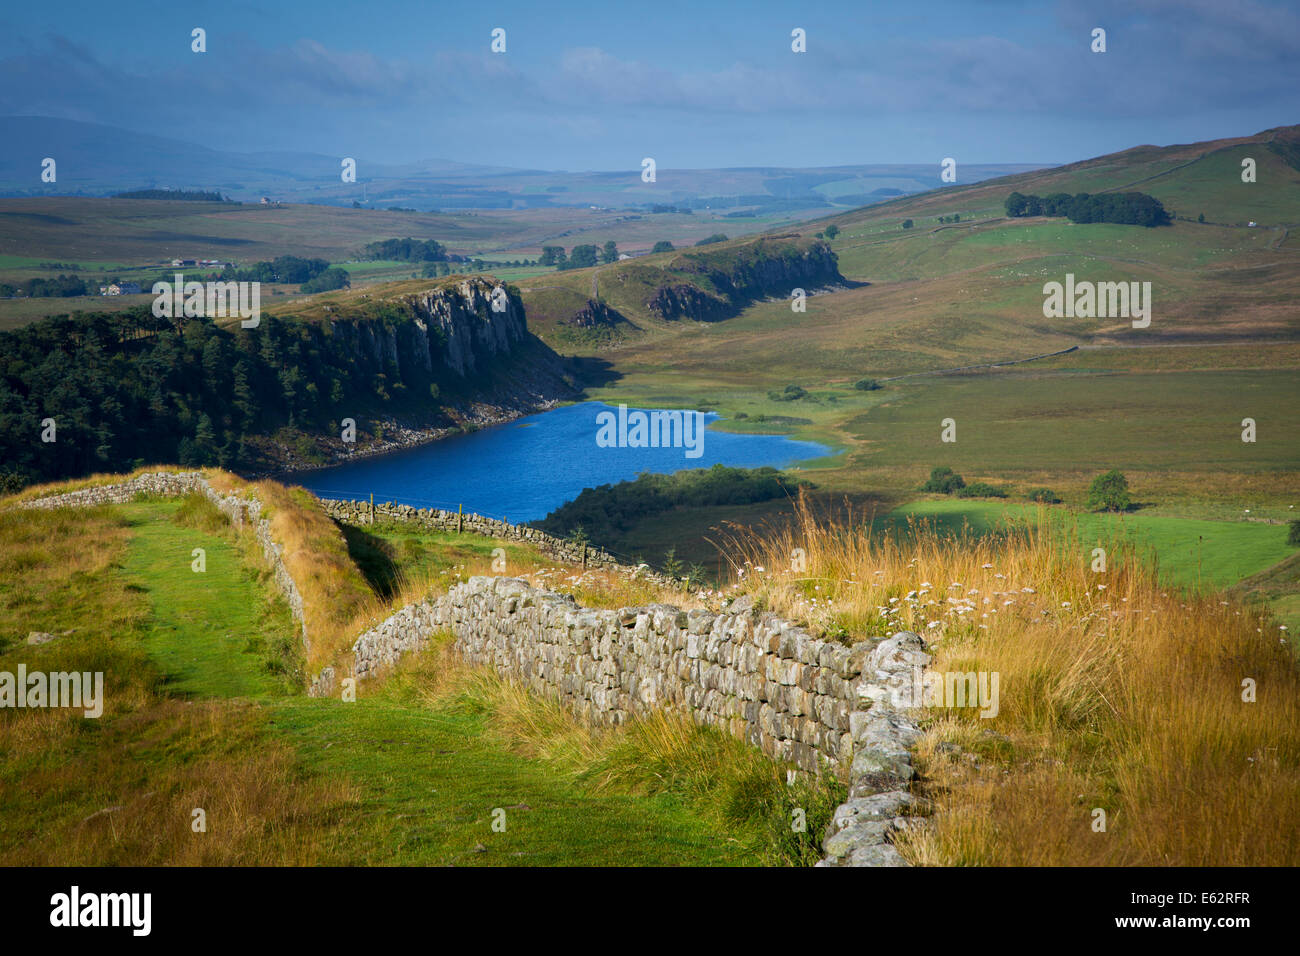 Dawn at Hadrian's Wall near the Roman fort at Housesteads, Northumberland, England - Stock Image